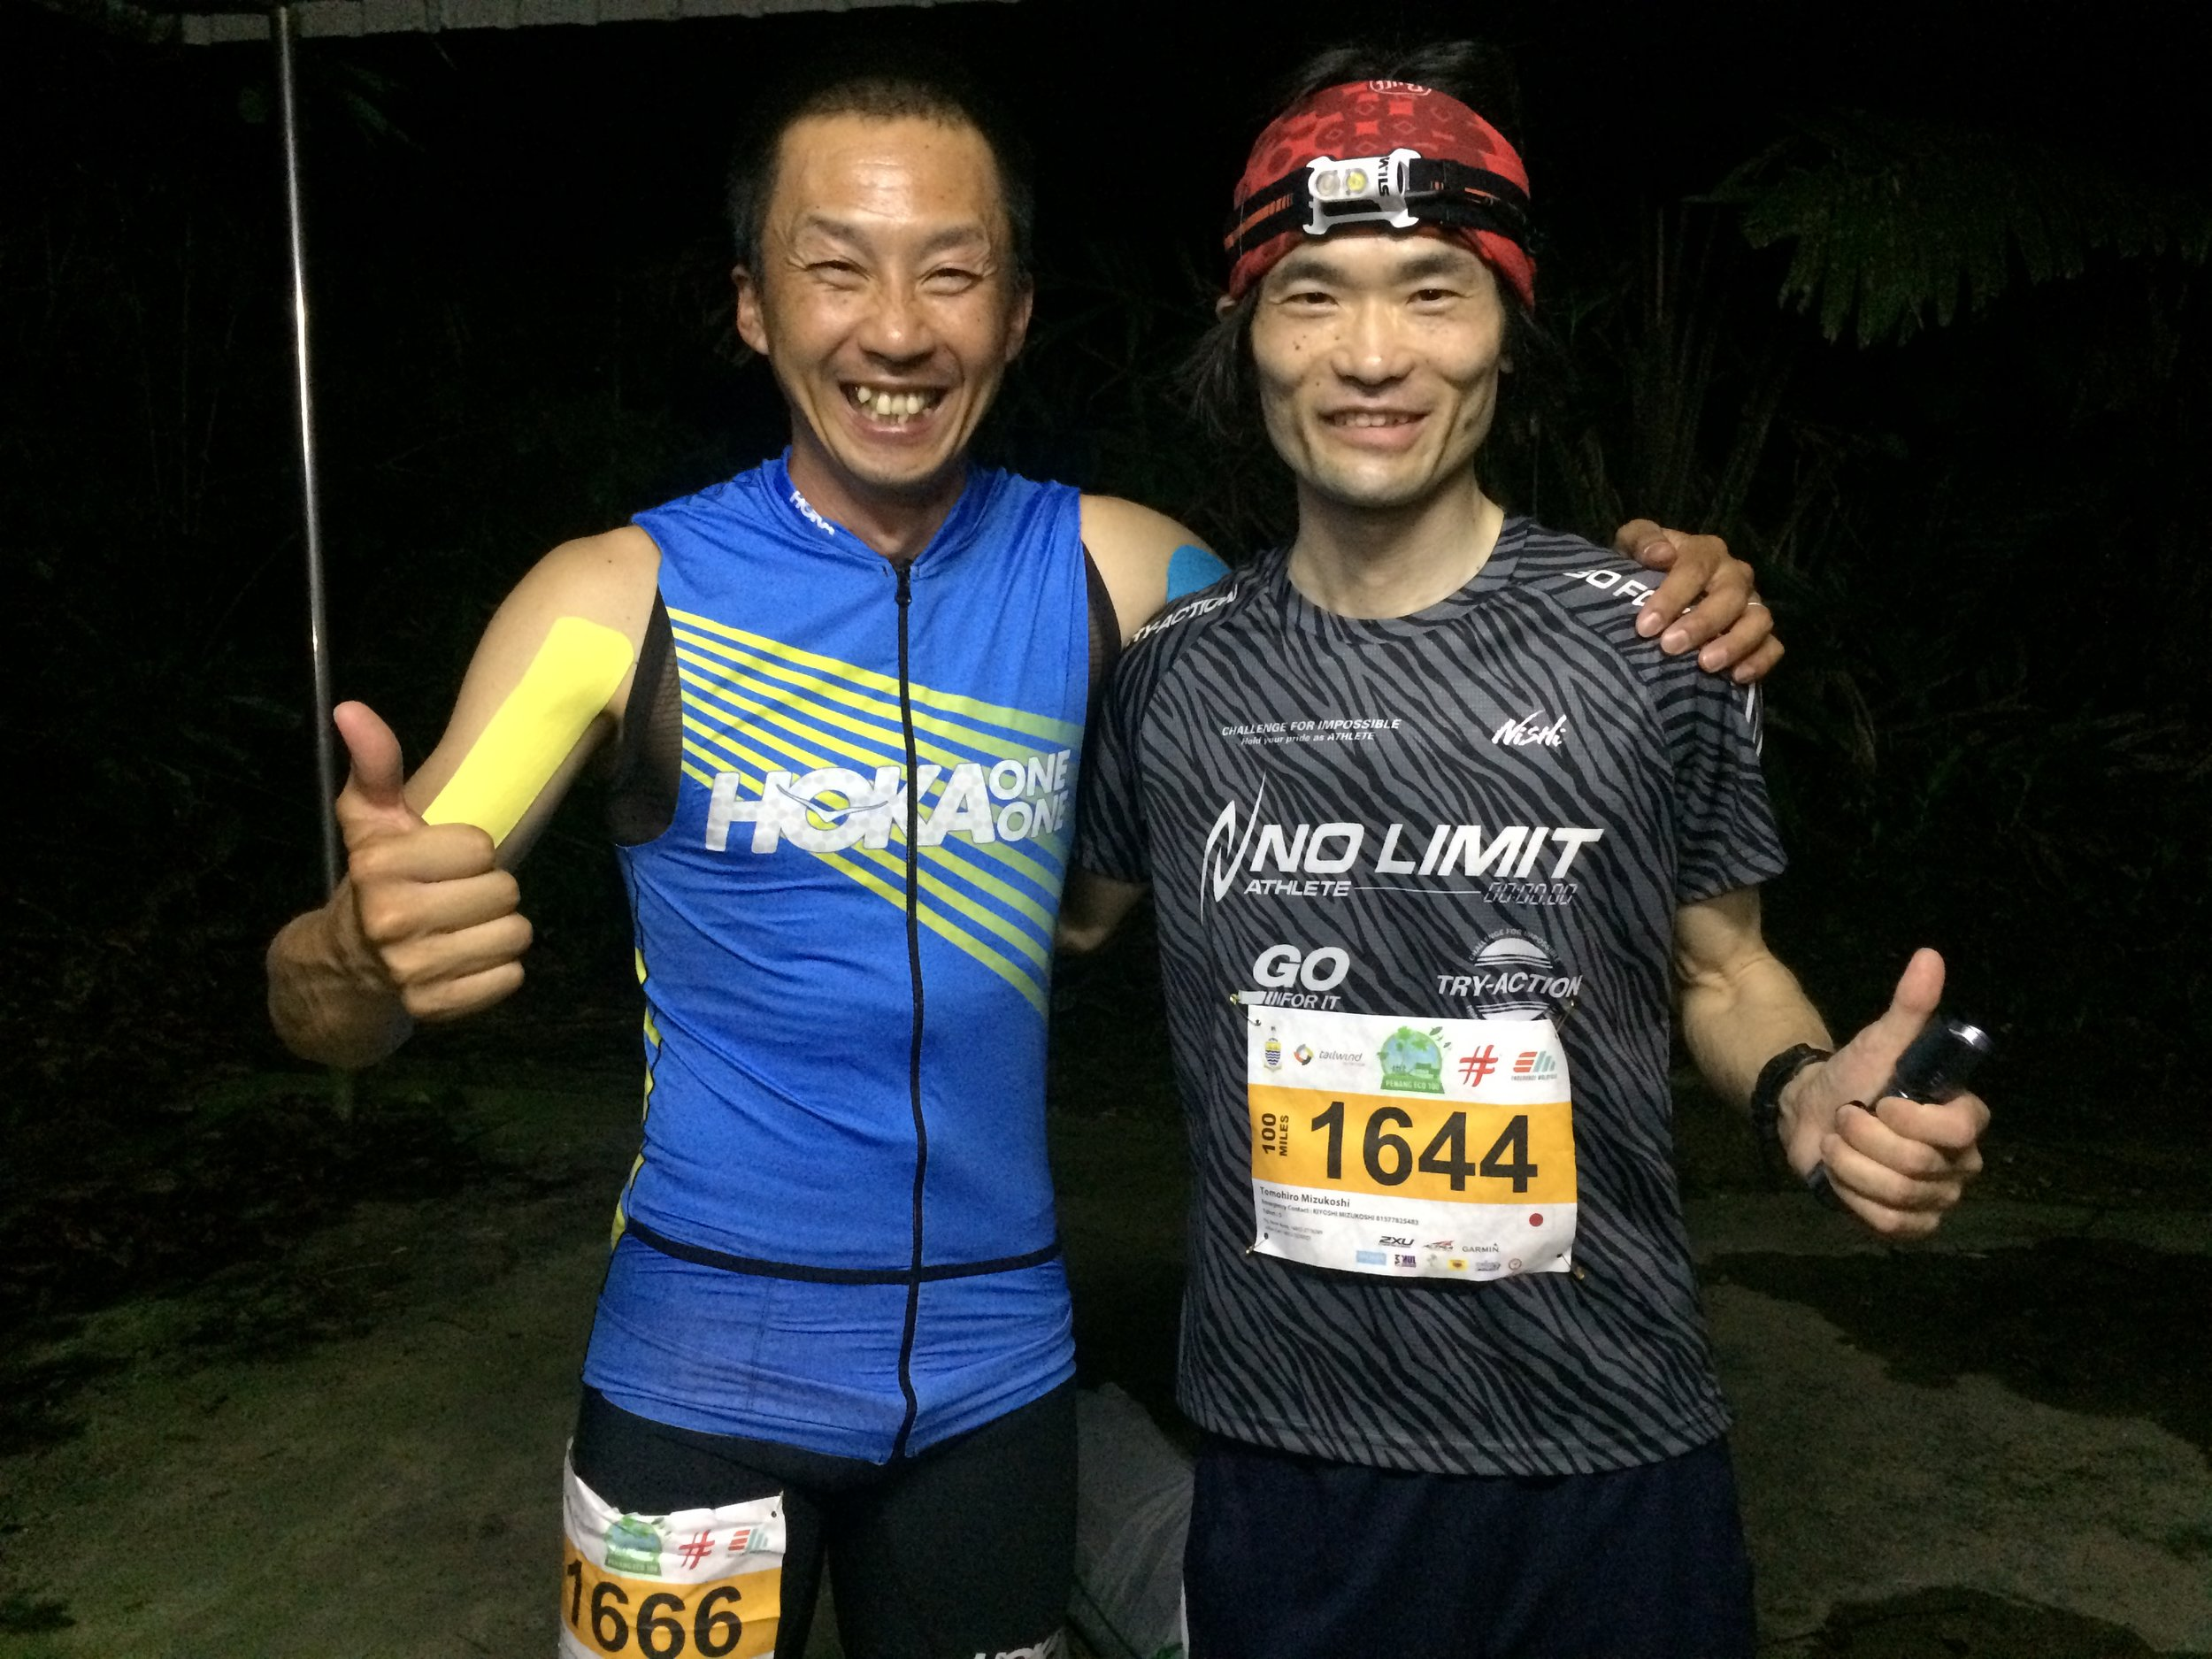 Sota Ogawa and Tomohiro Mizukoshi from Japan coloured the first 100k of the 100 miles race